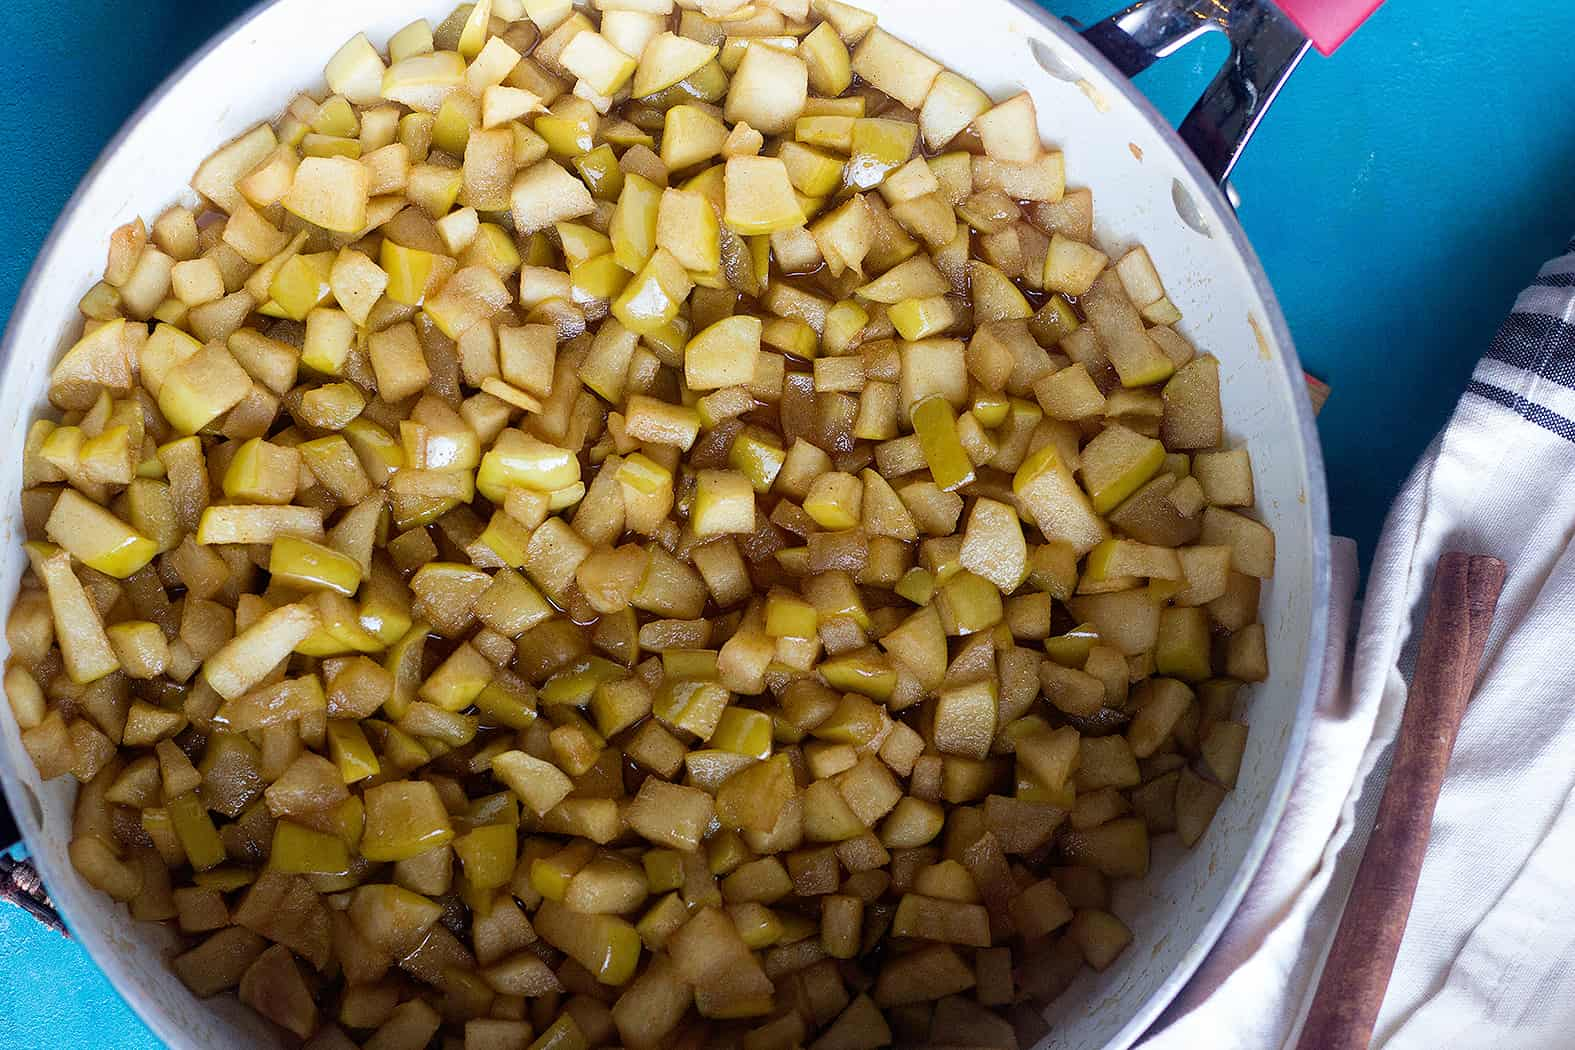 Cook apples butter cinnamon and brown sugar in a large pan until soft.